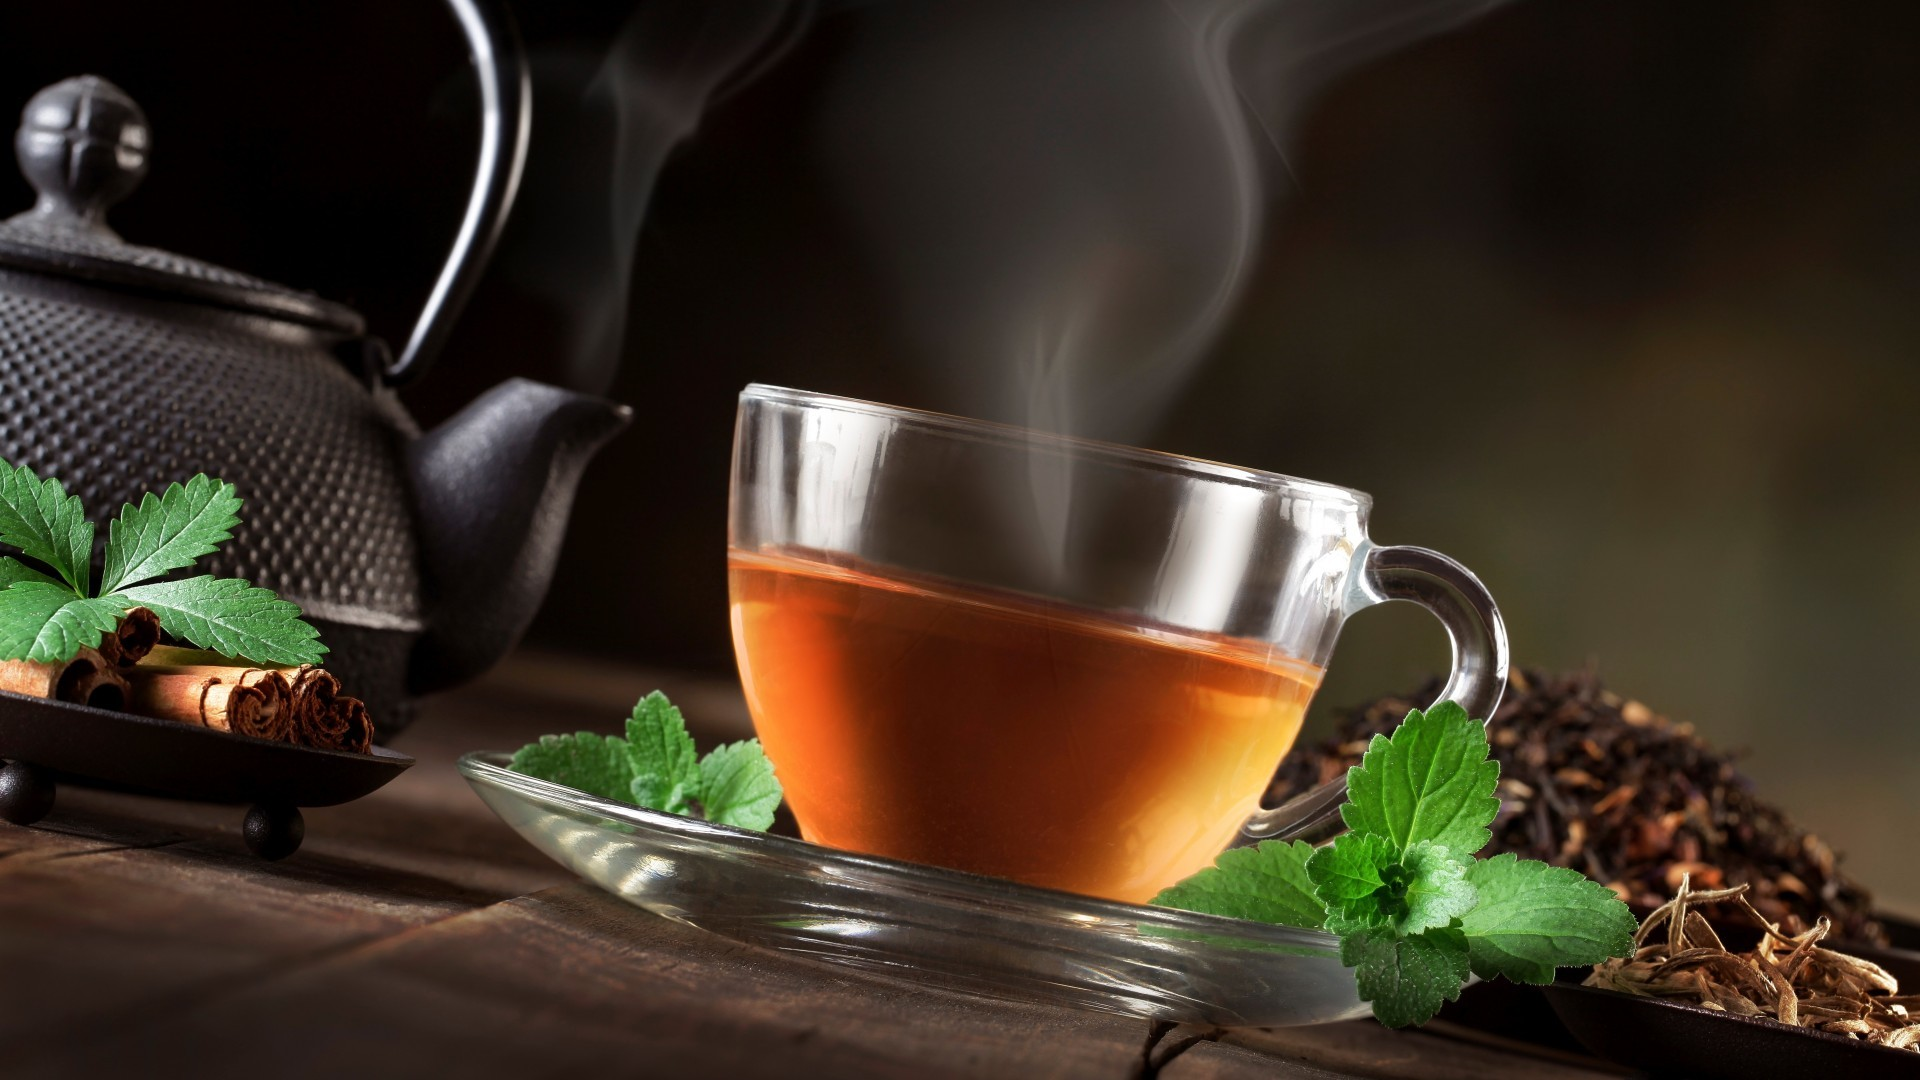 1920x1080 Download-tea-mint-leaves-teapot-cup-steam-cinnamon-